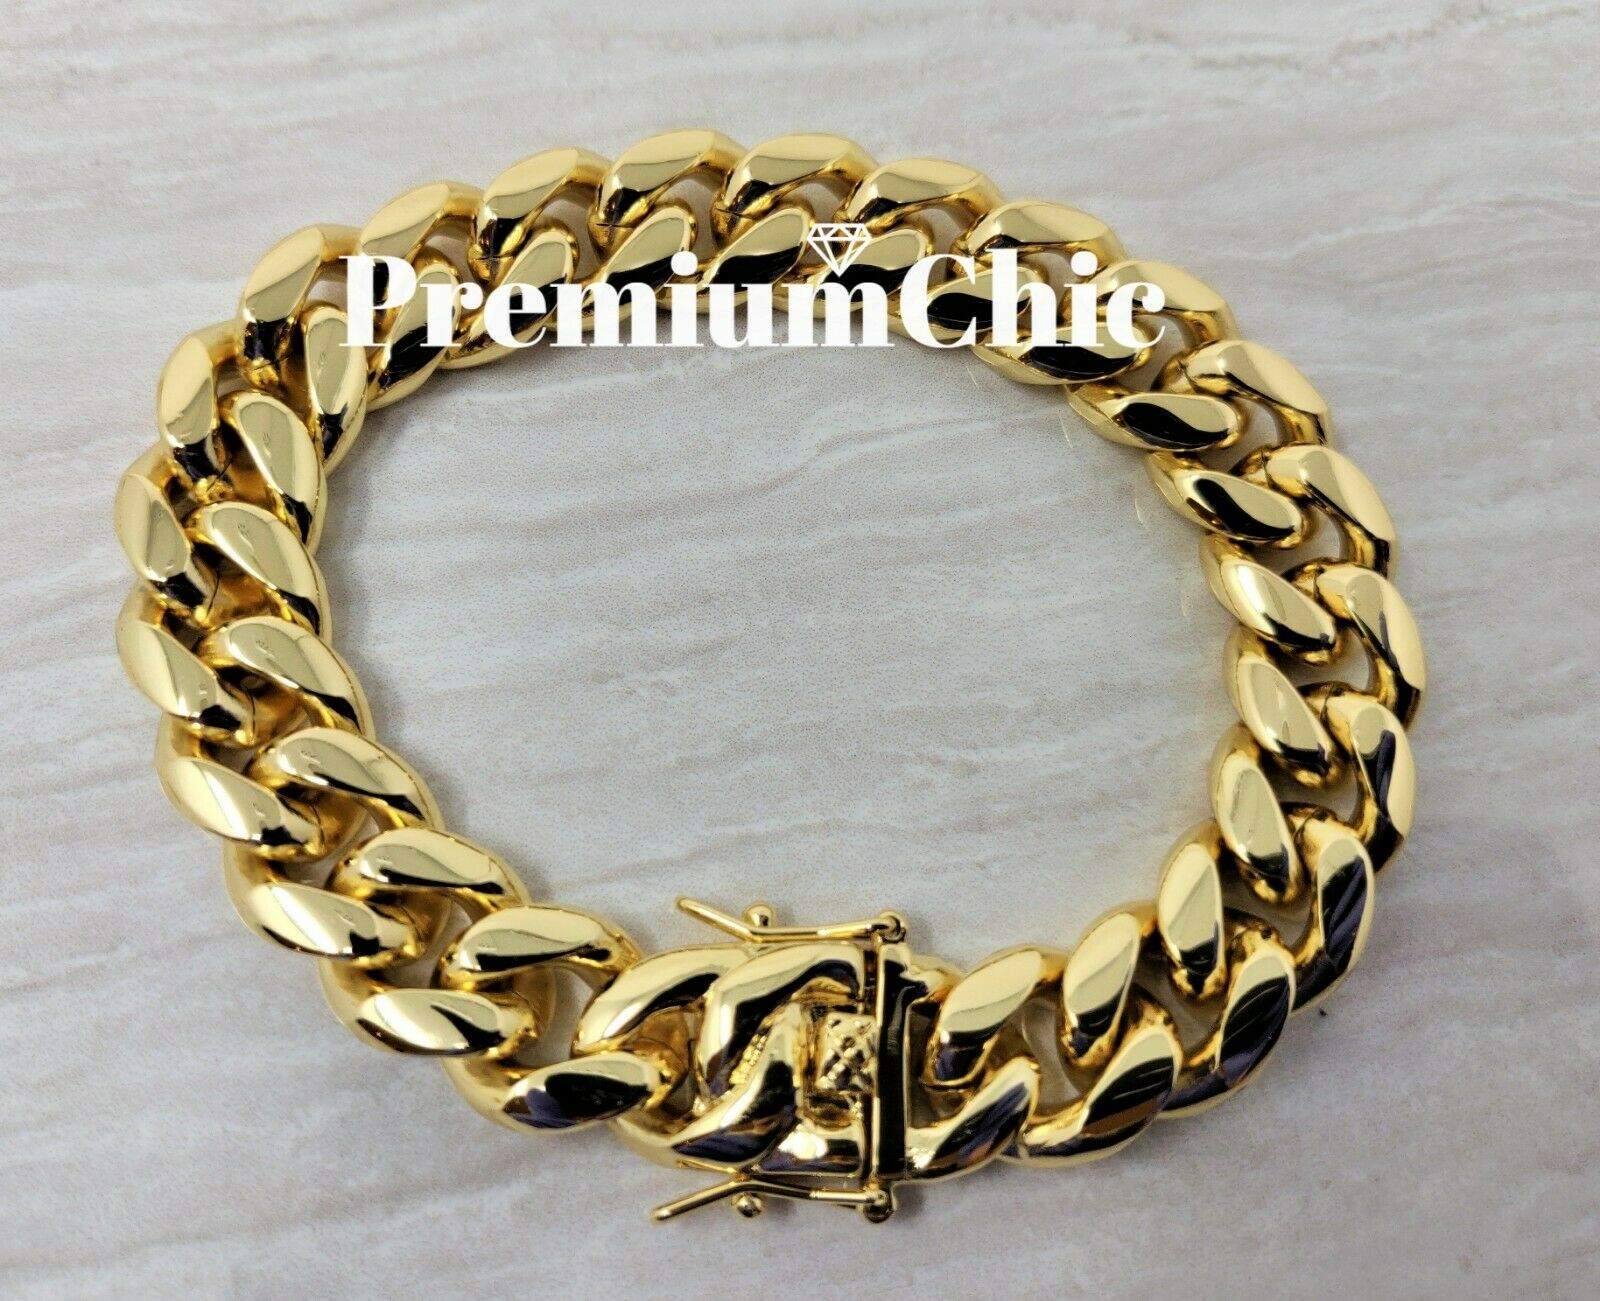 Mens Miami Cuban Link Chain HEAVY 18k / 14k Gold Plated Stainless Steel